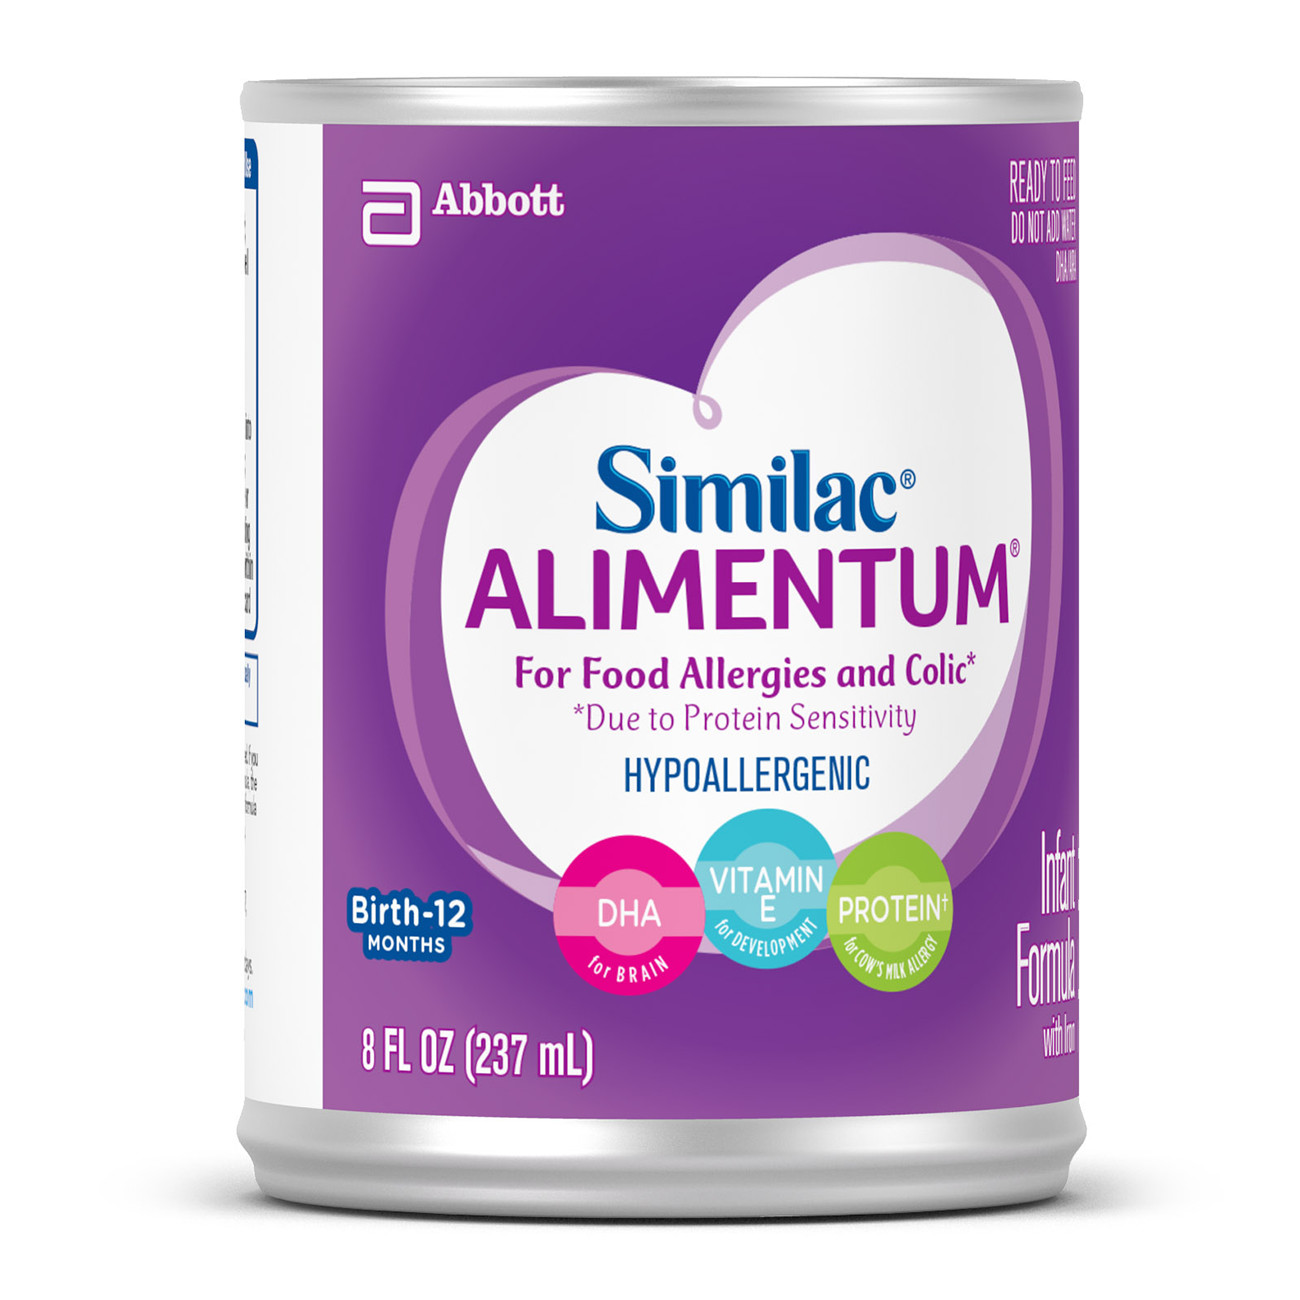 Alimentum Ready To Feed 2 Oz similac alimentum hypoallergenic infant formula (24 count) for food  allergies and colic, baby formula, ready-to-feed, 8 fl oz